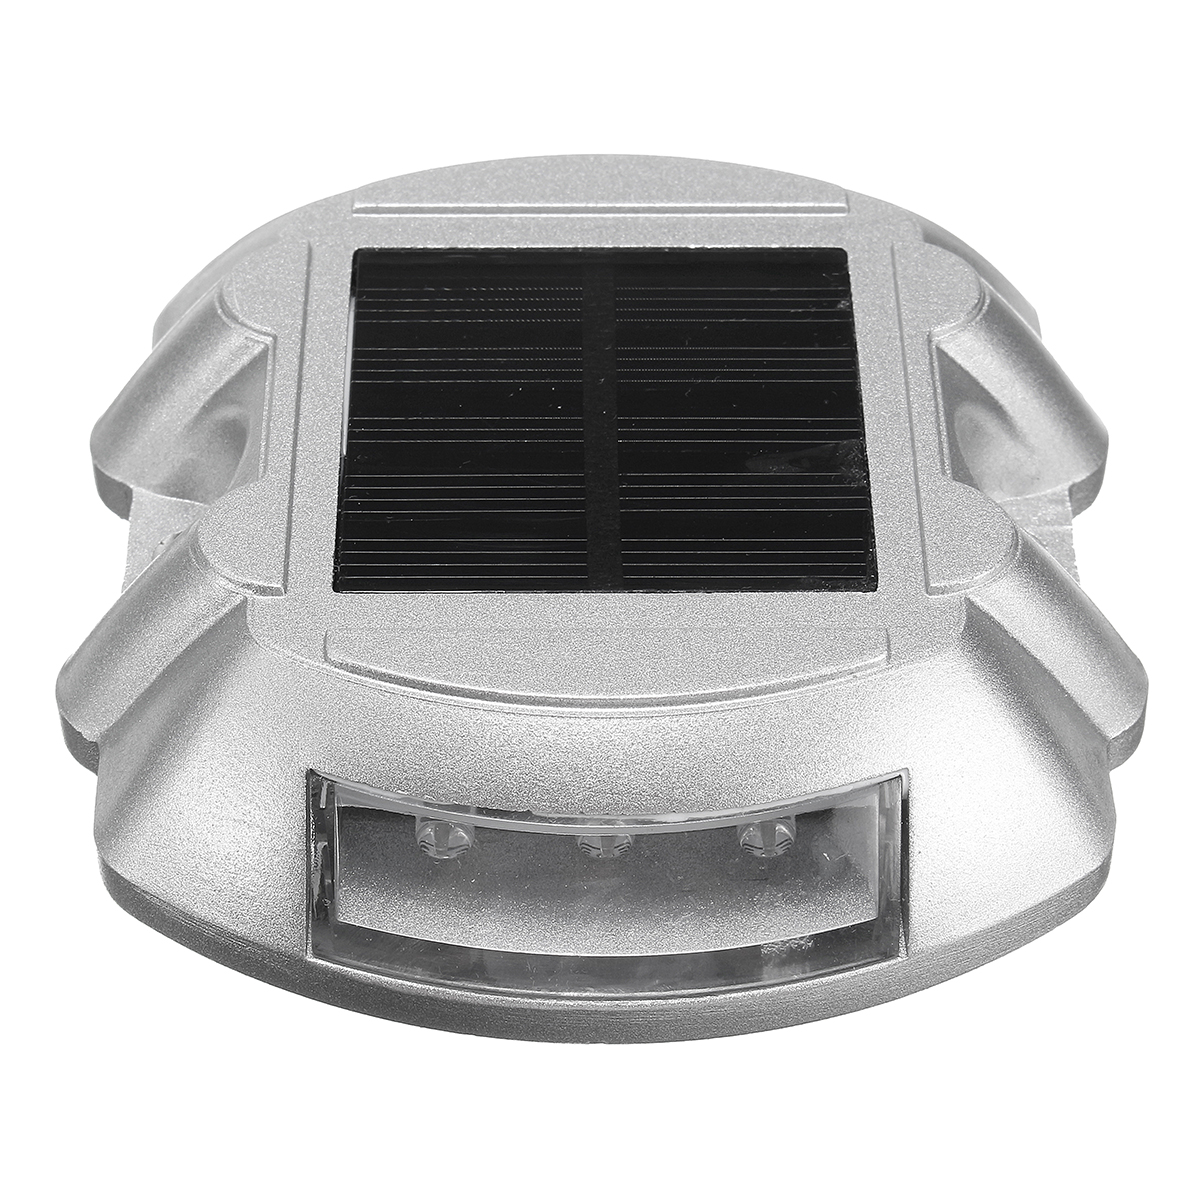 0.35W Waterproof 6 LED Solar Power Garden Road Dock Yard Pathway Stair Light